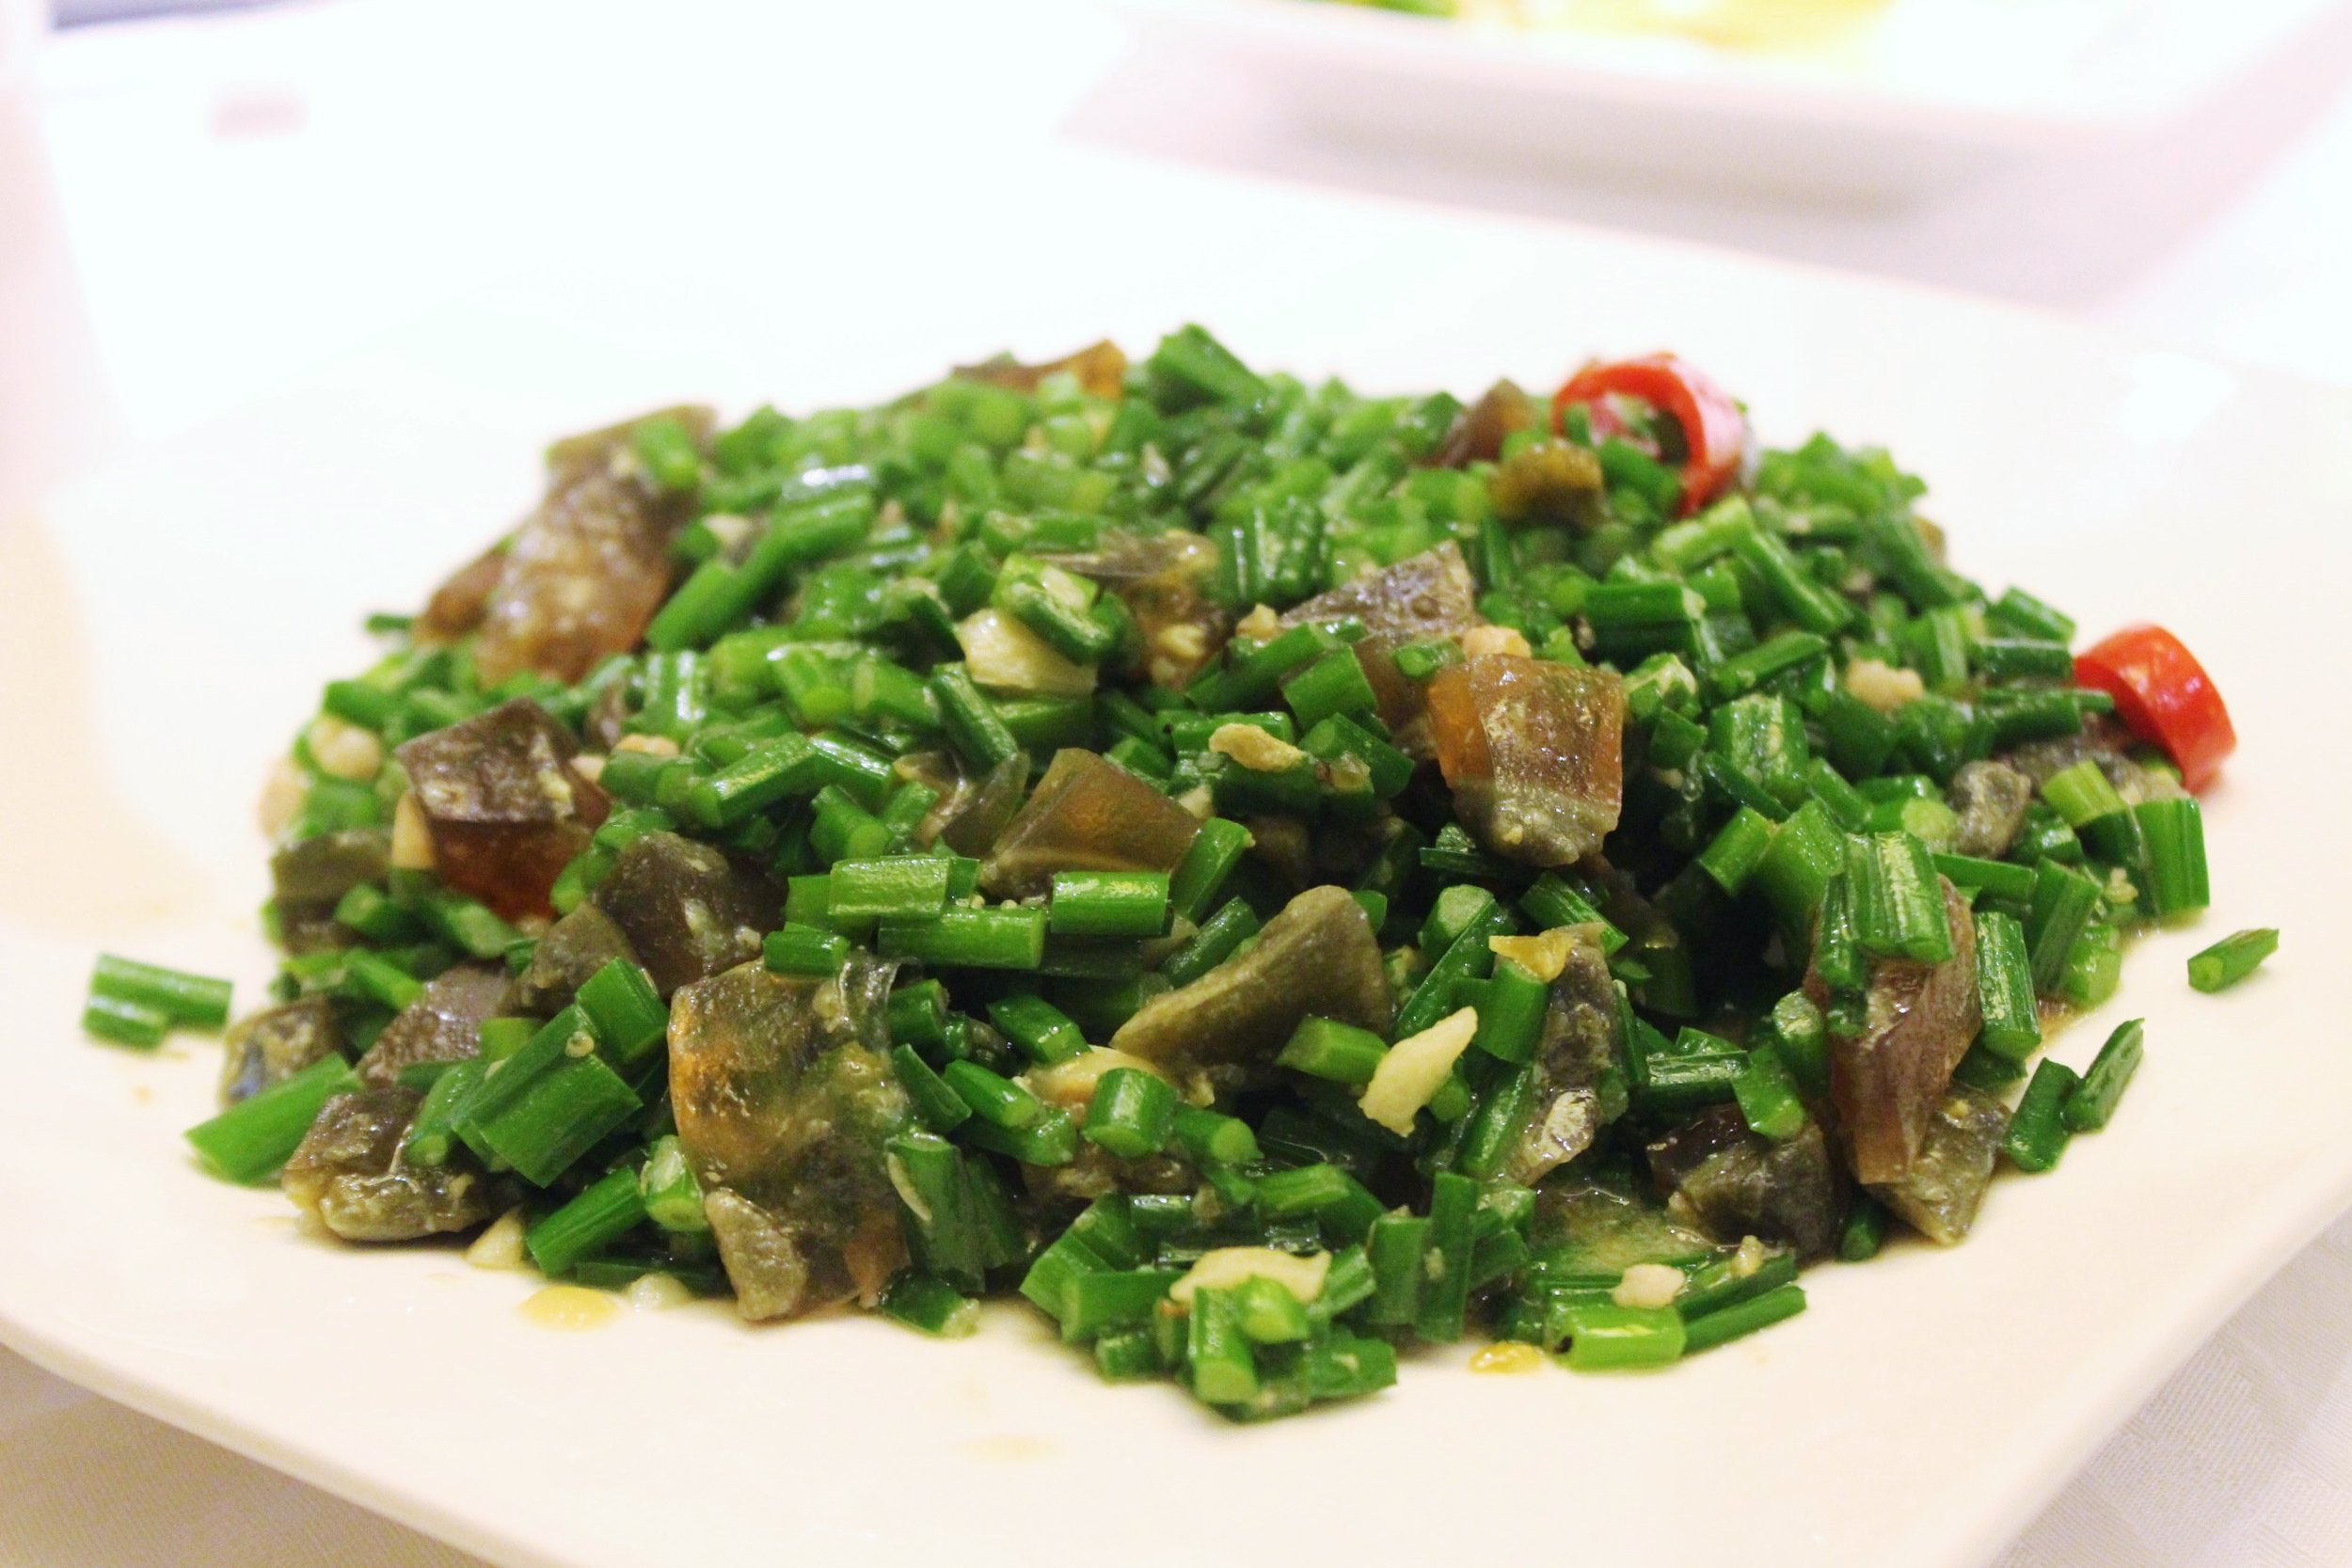 Sautéed chives with century eggs 韭菜松花炒 at 欣葉 in Taiwan